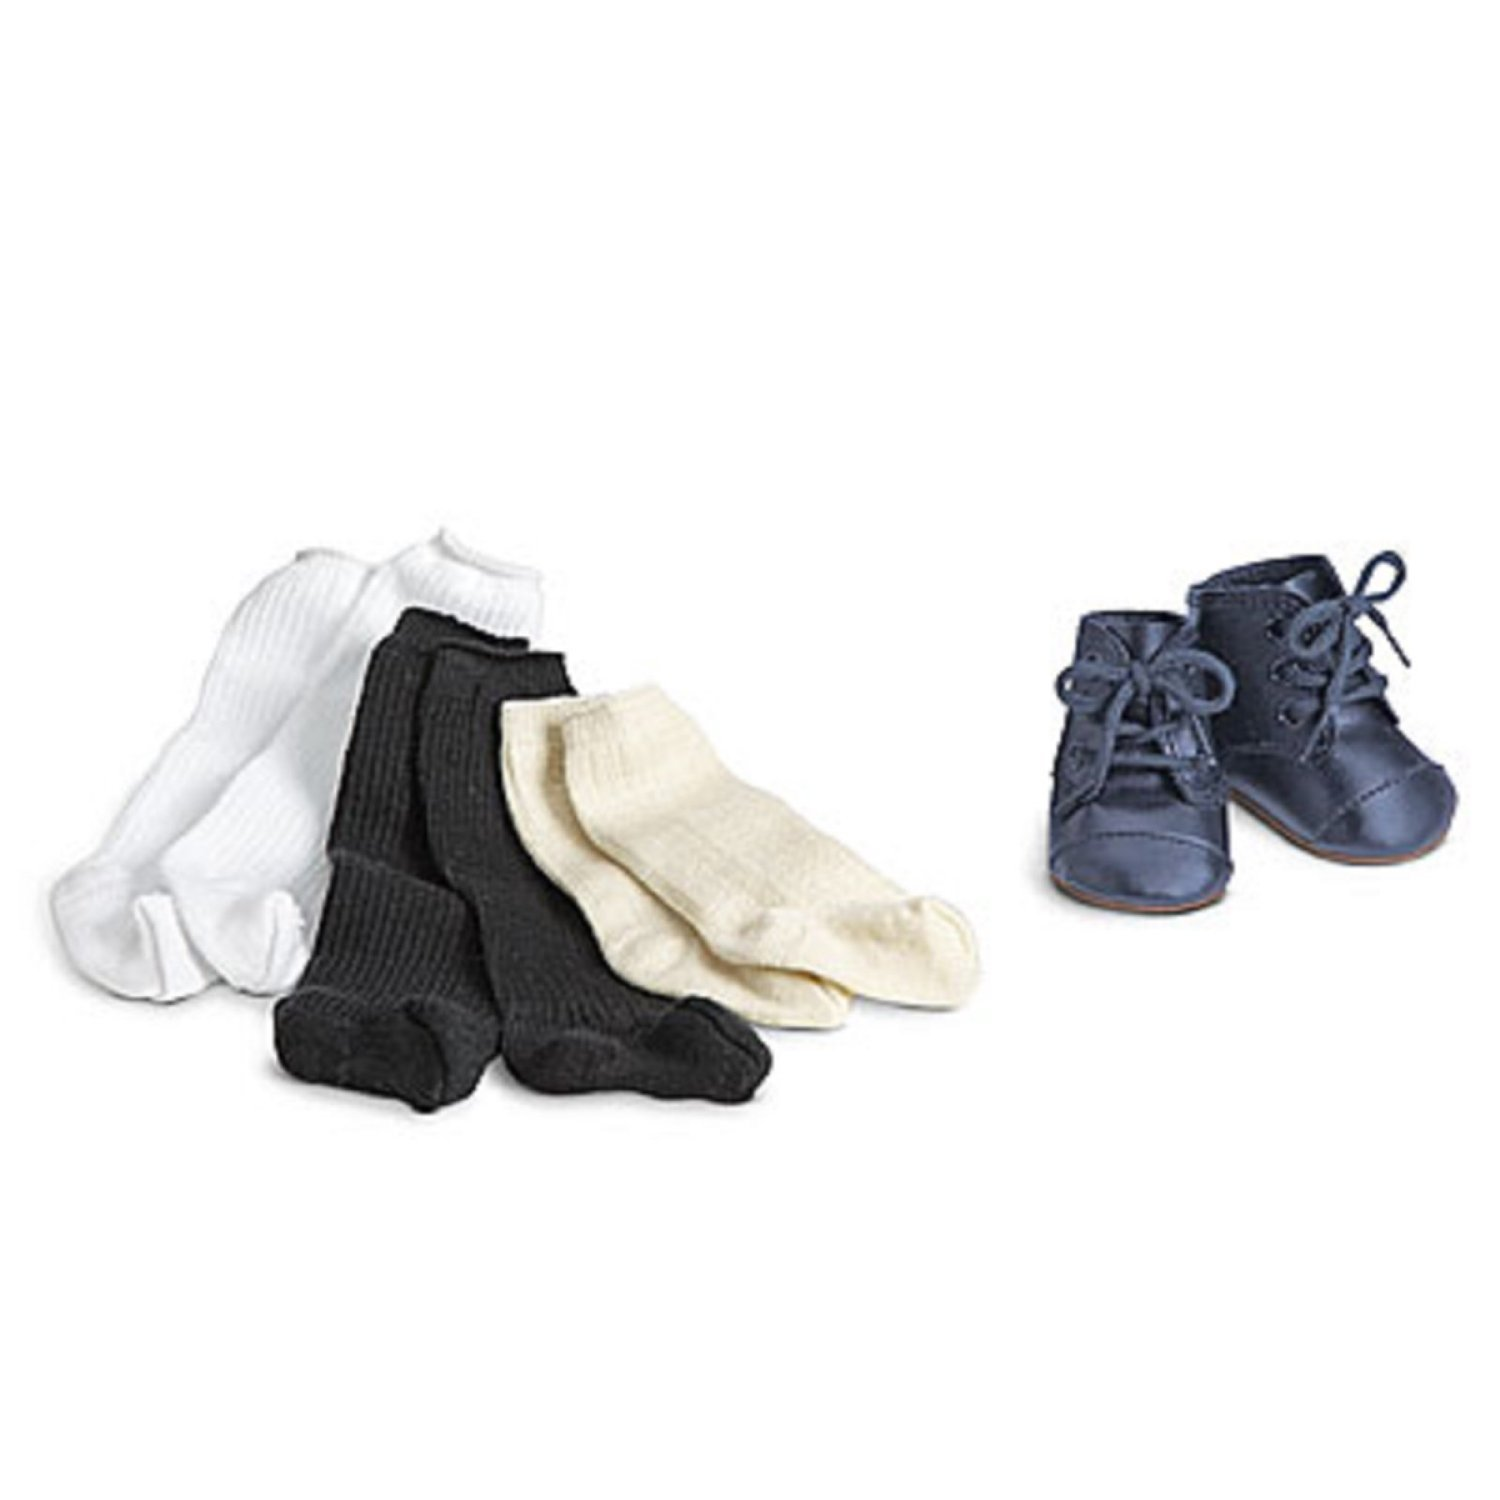 1b6dfcf7b6961 American Girl Addy's Shoes & Socks for Doll New with Box